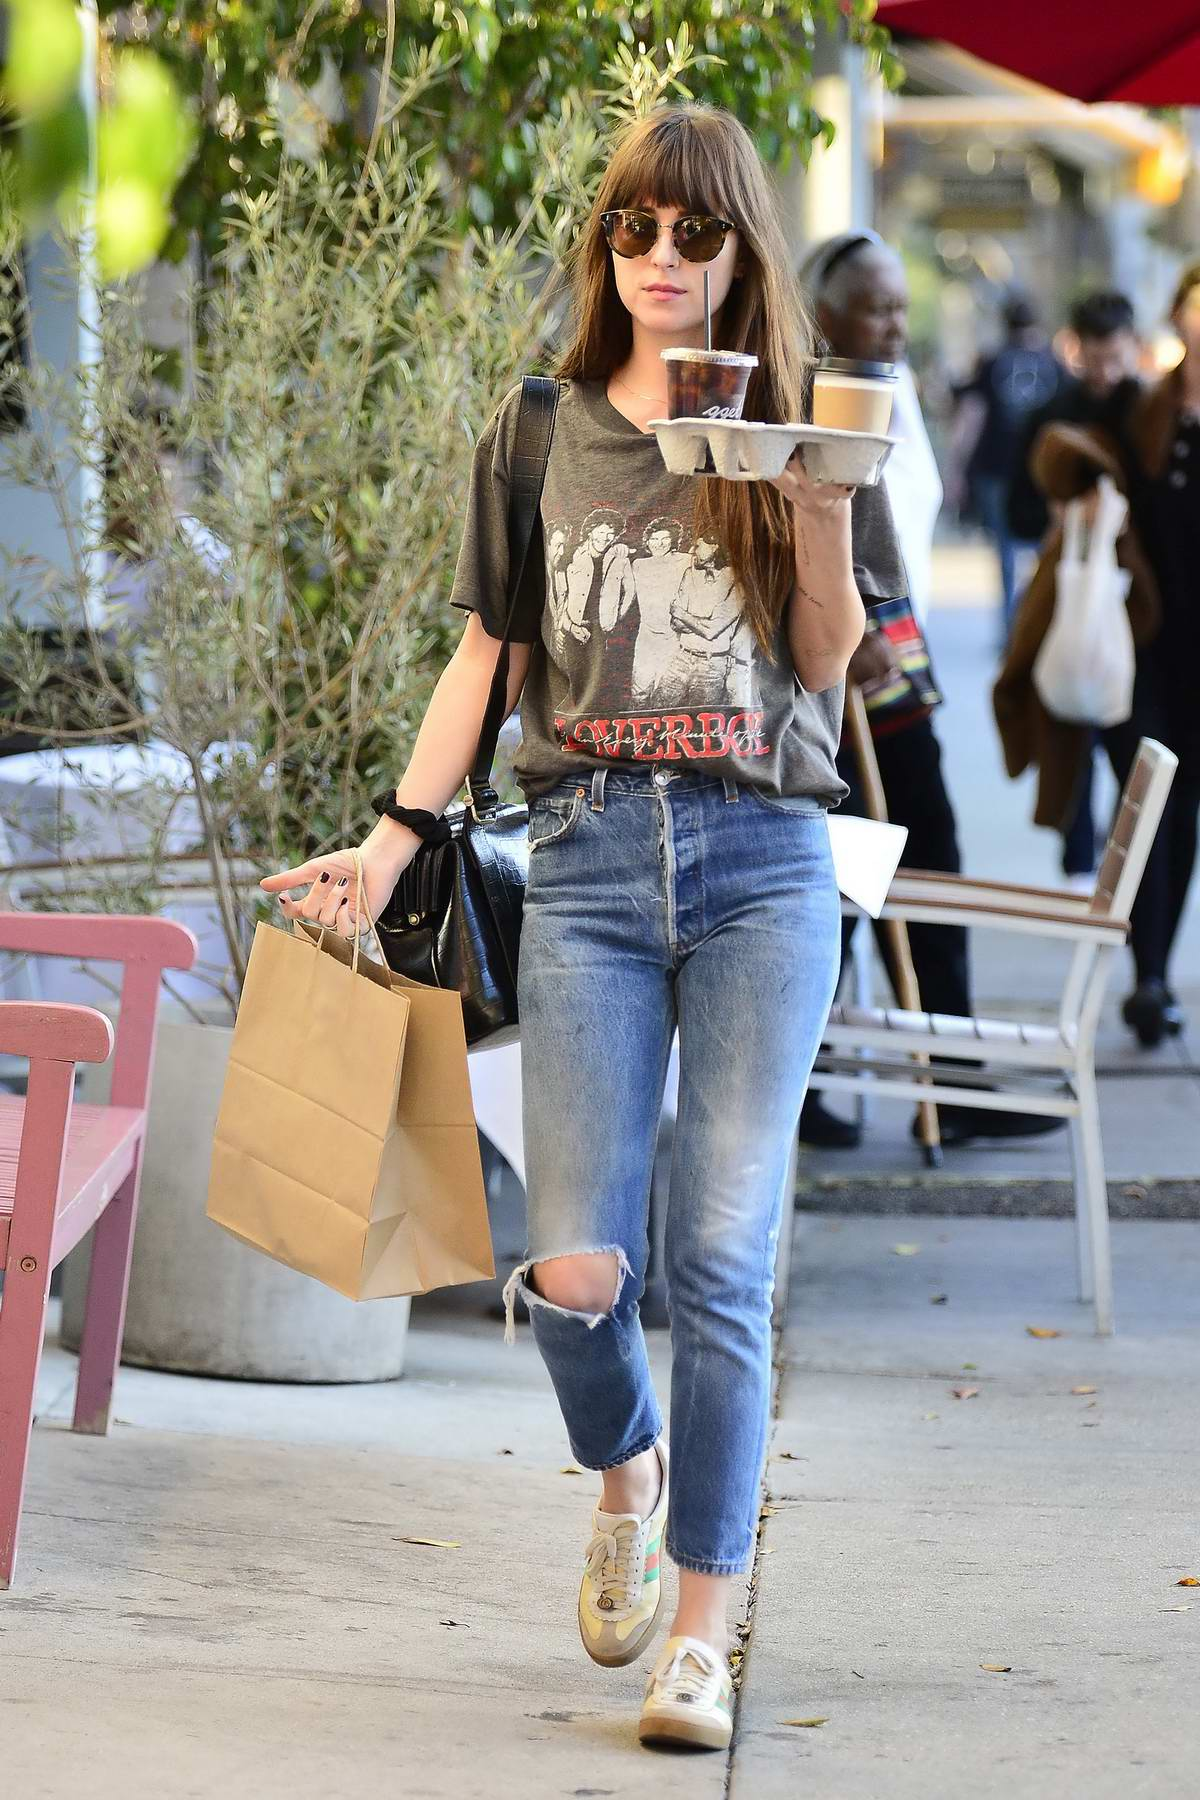 Dakota Johnson rocks 'Loverboy' t-shirt and jeans with Gucci sneakers while making a coffee and snack run in Los Angeles